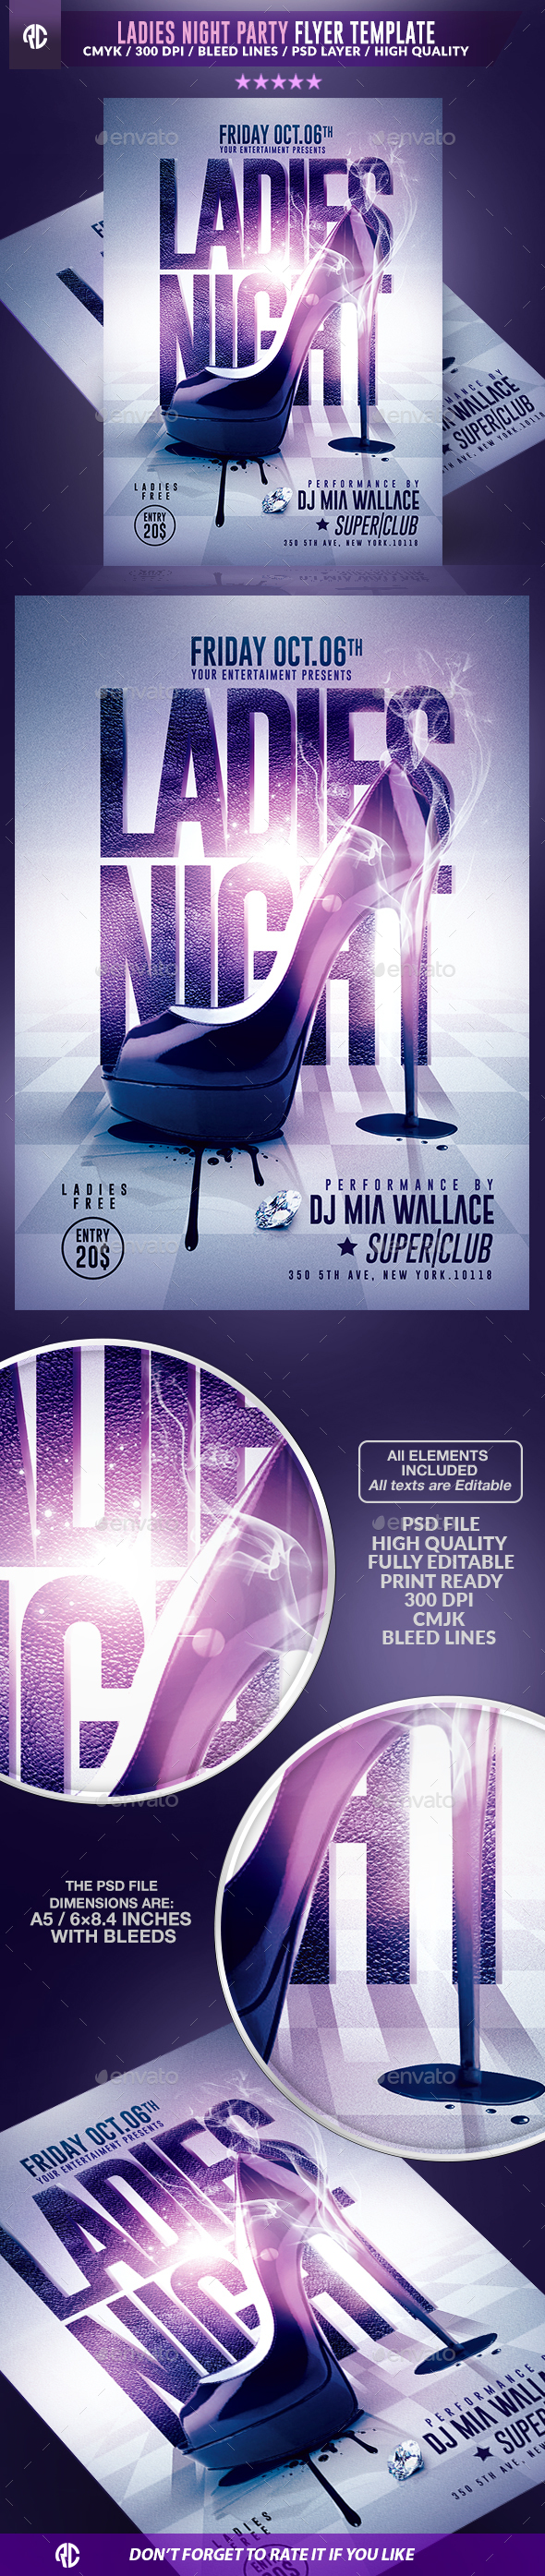 Ladies Night Party | Psd Flyer Template - Events Flyers